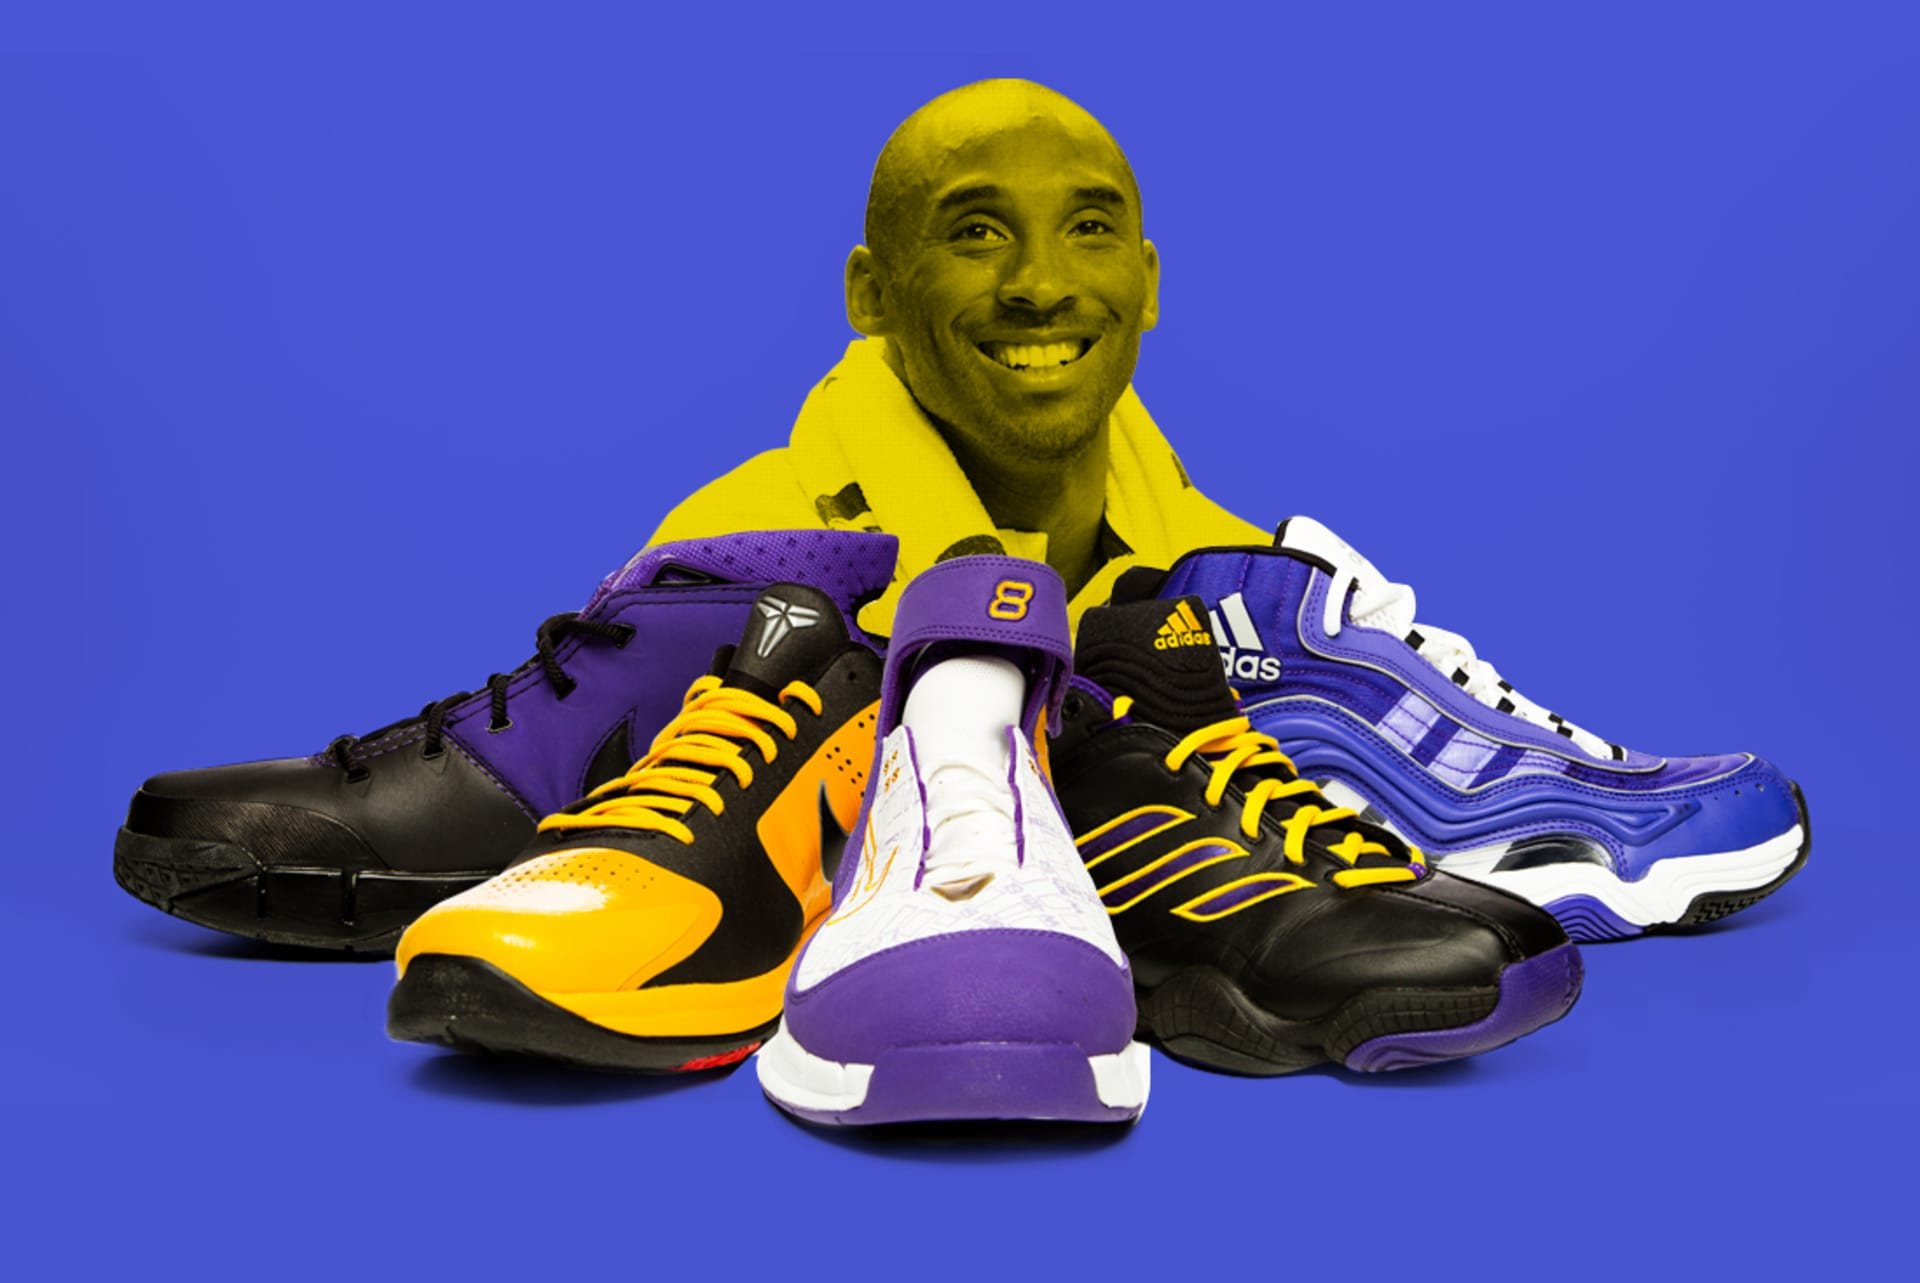 417ae3cd8109 The Evolution of Kobe Bryant s Signature Sneakers